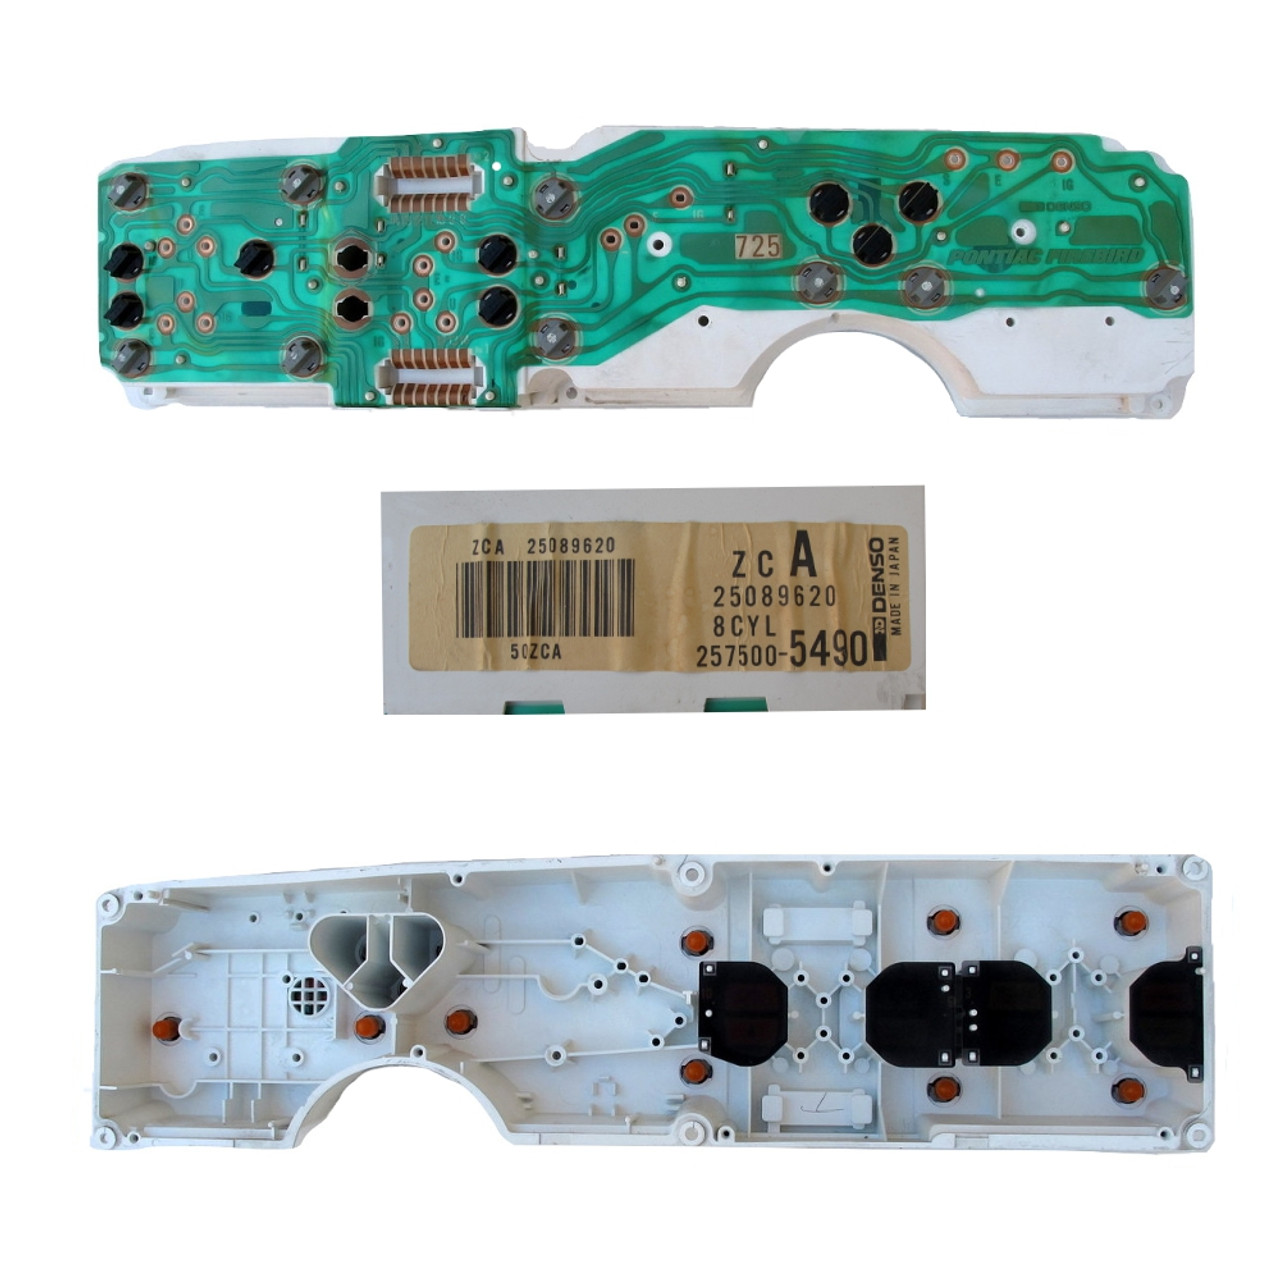 87-92 Firebird V8 Gauge Cluster Printed Circuit Board and case. GM Denso 25089620